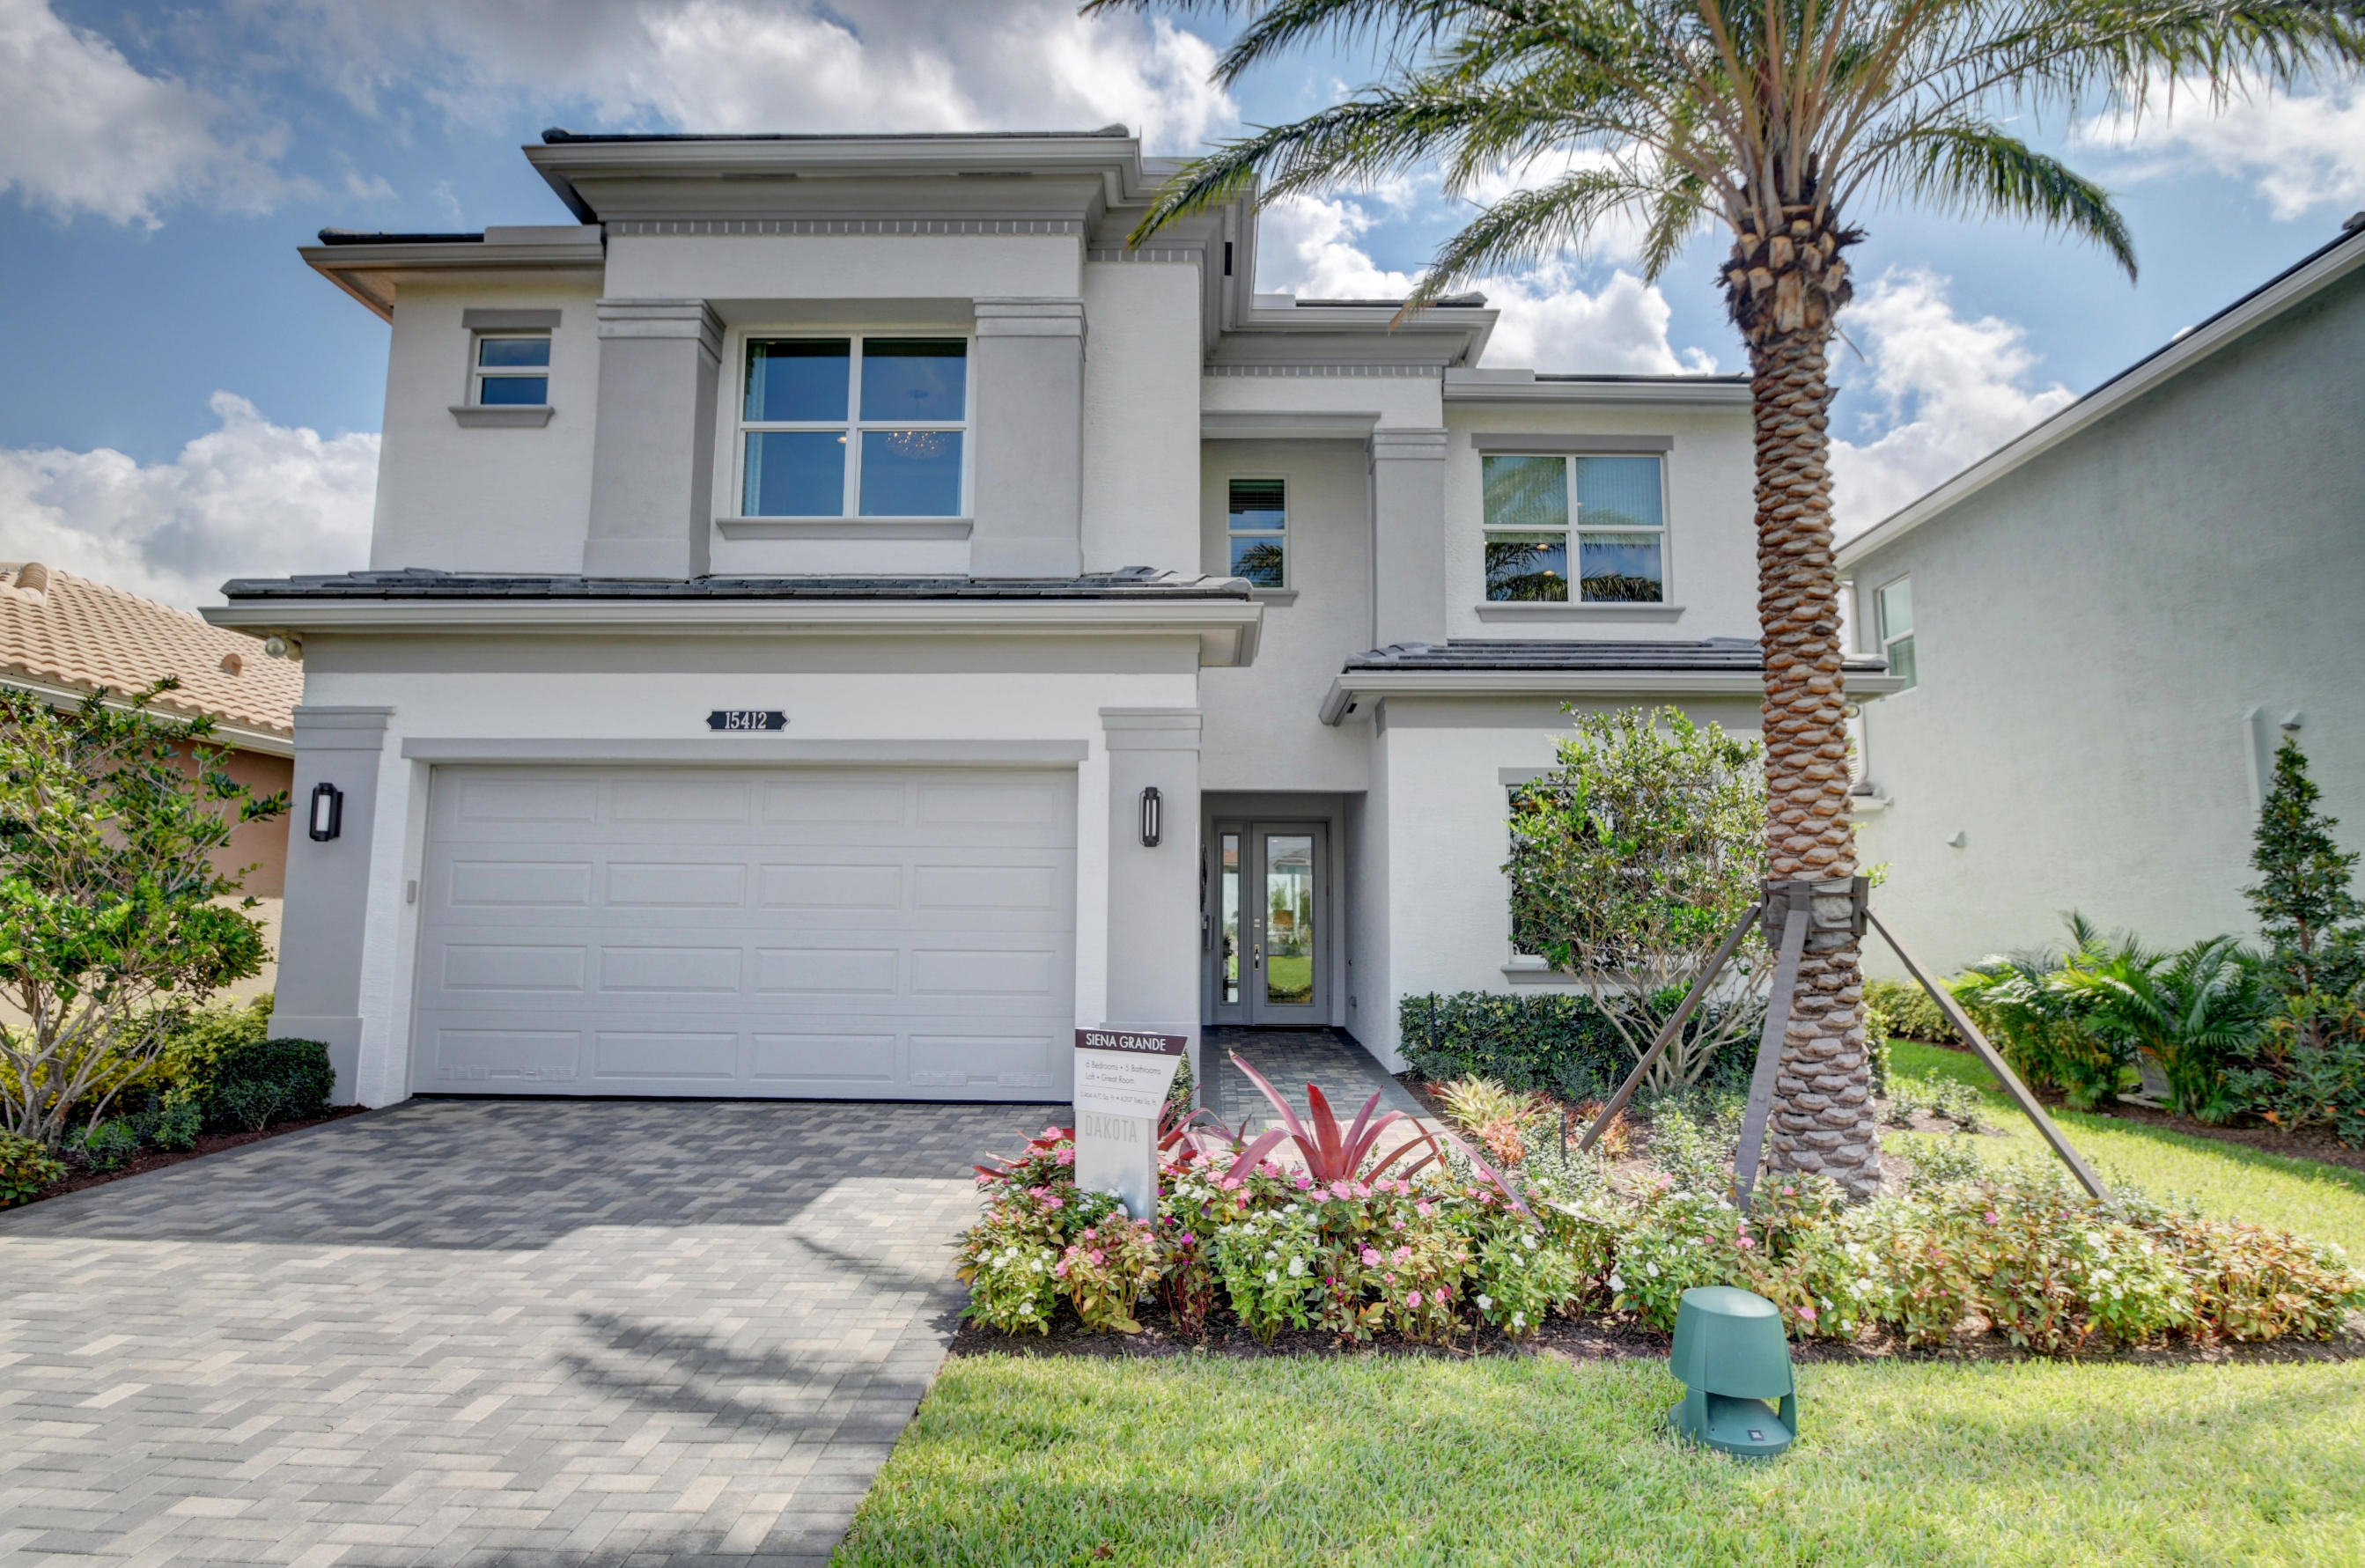 Dakota home 9827 Steamboat Springs Circle Delray Beach FL 33446